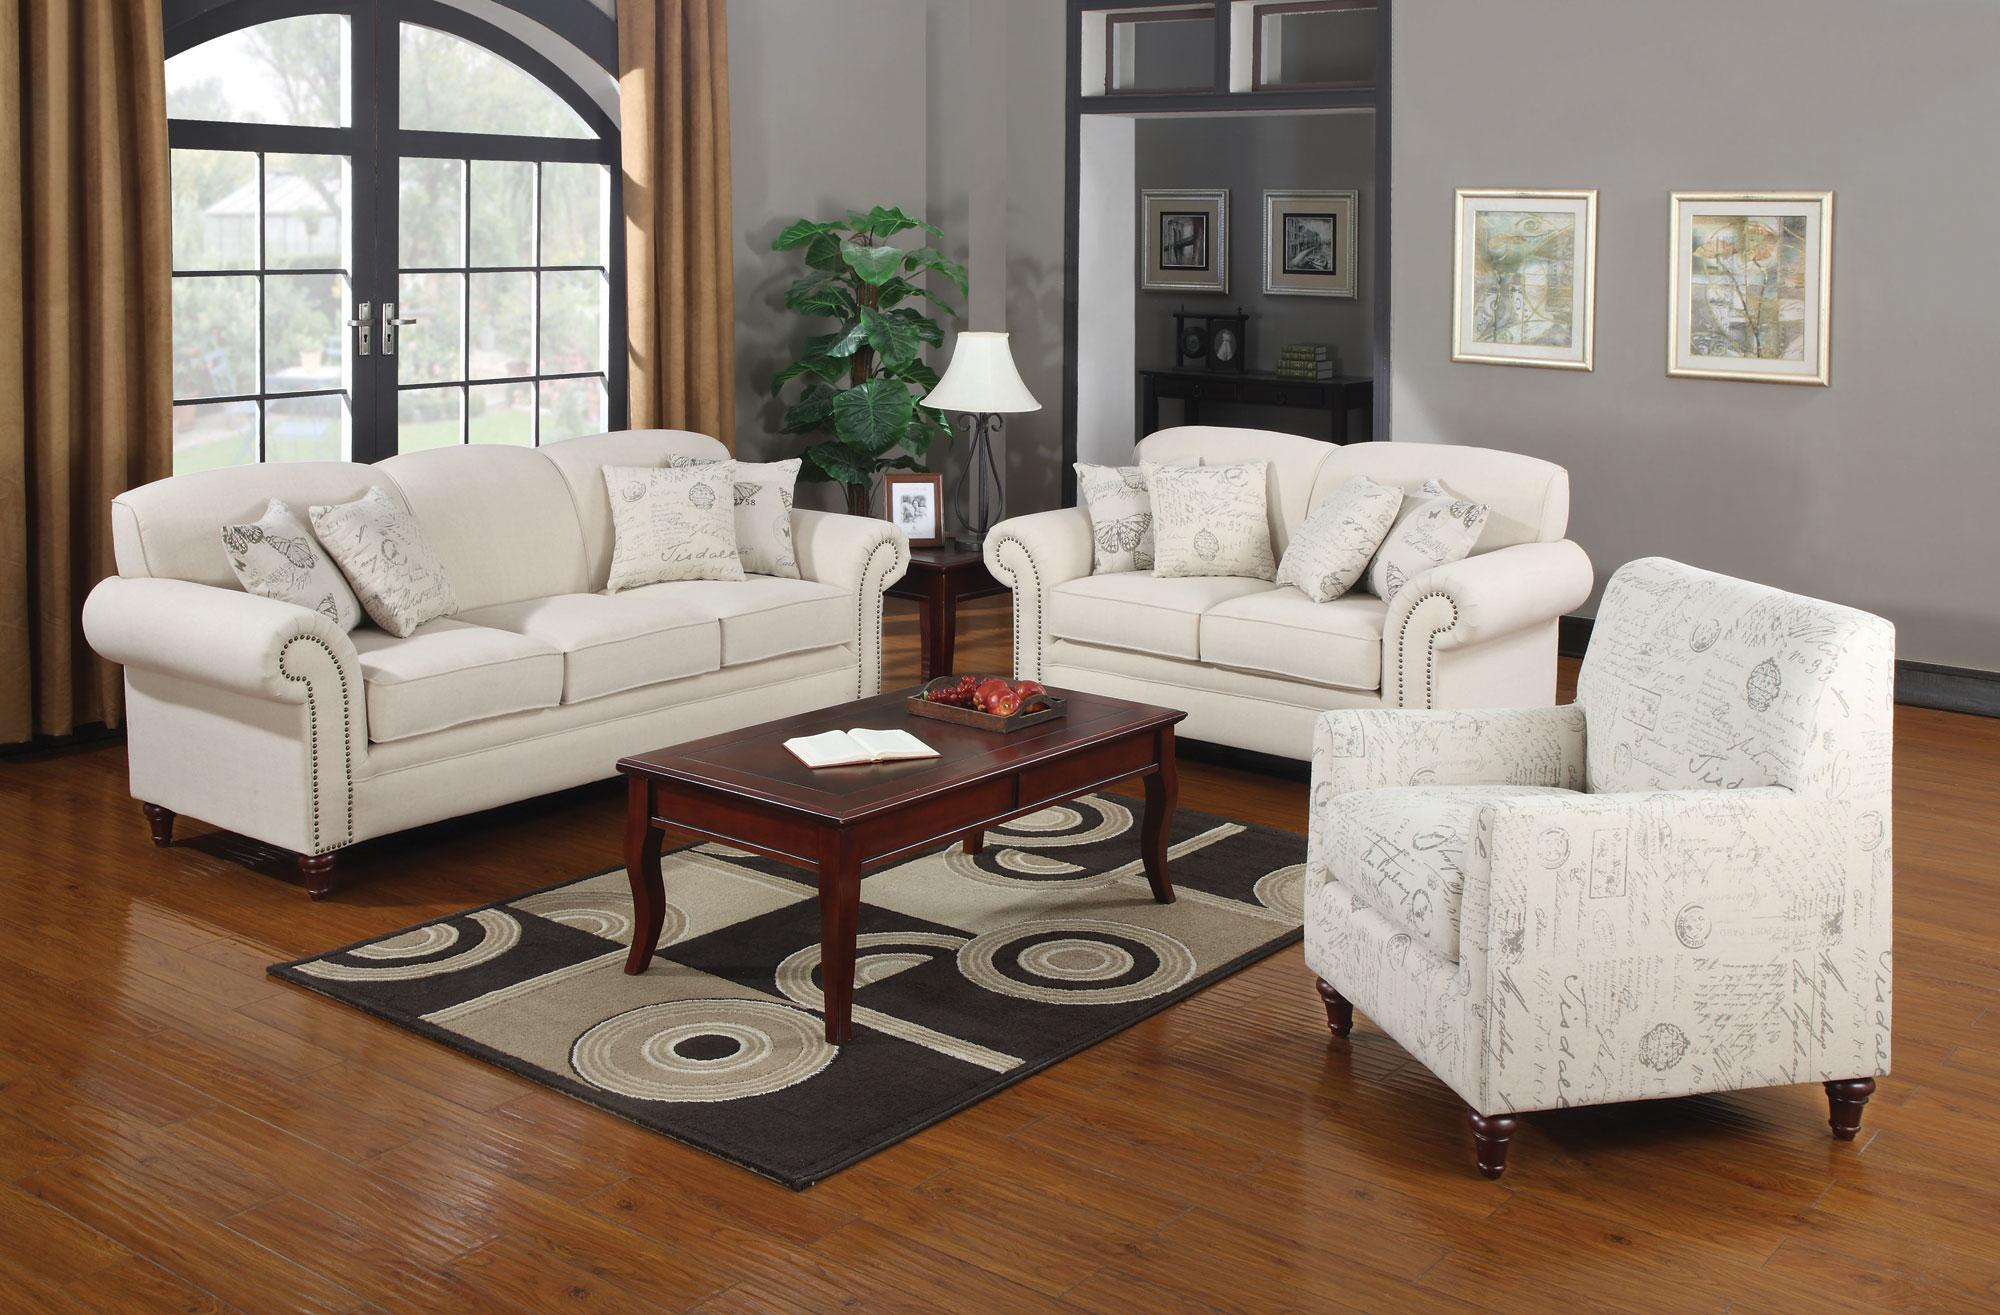 Living Room Sofa And Loveseat Sets Rose Hill Furniture Trapper Brown Dream Terracotta Complete Living